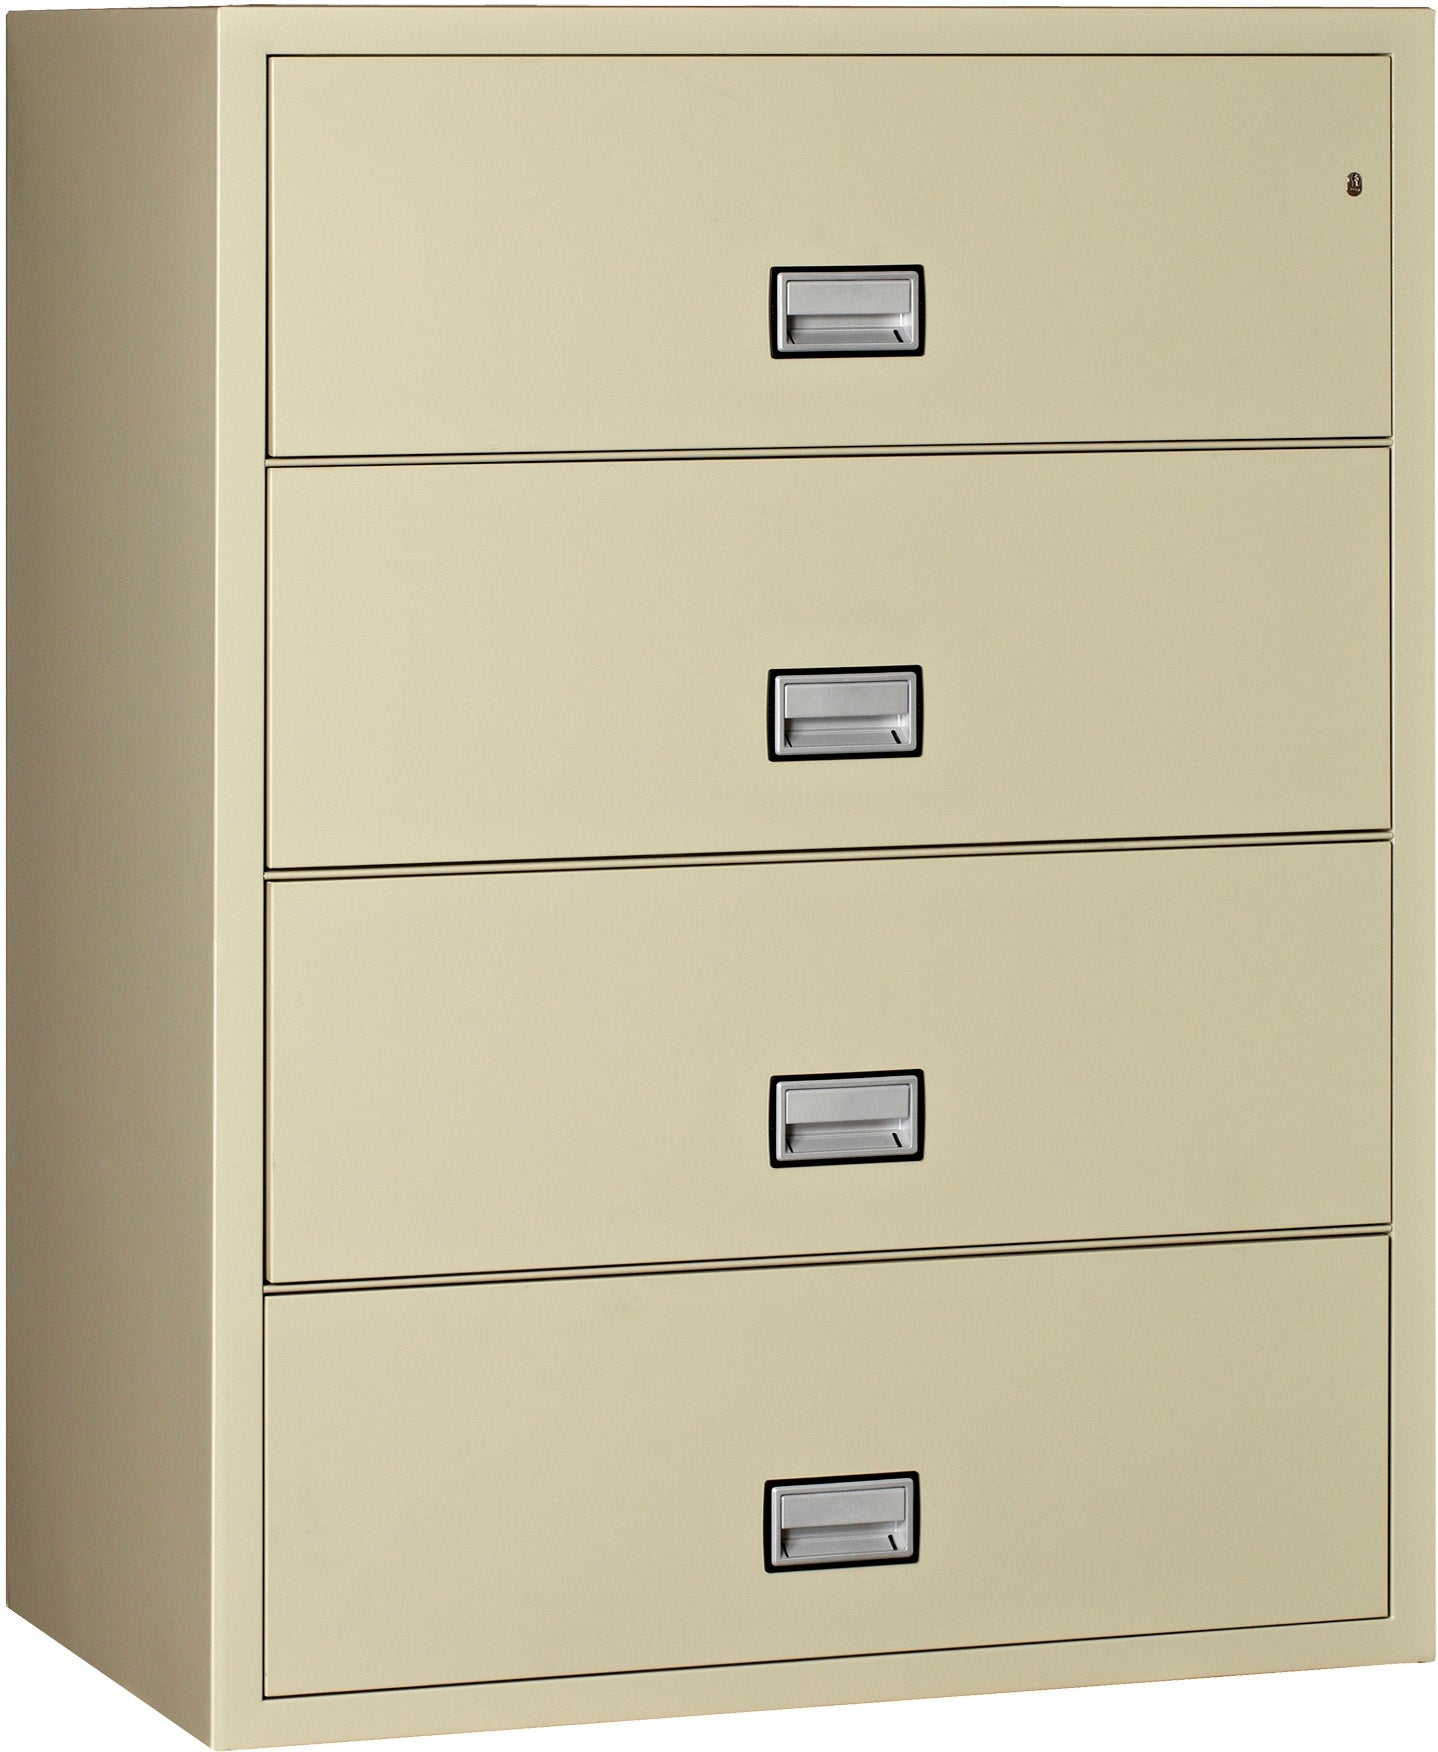 Lateral 44 inch 4-Drawer Fire & Water Resistant File Cabinet